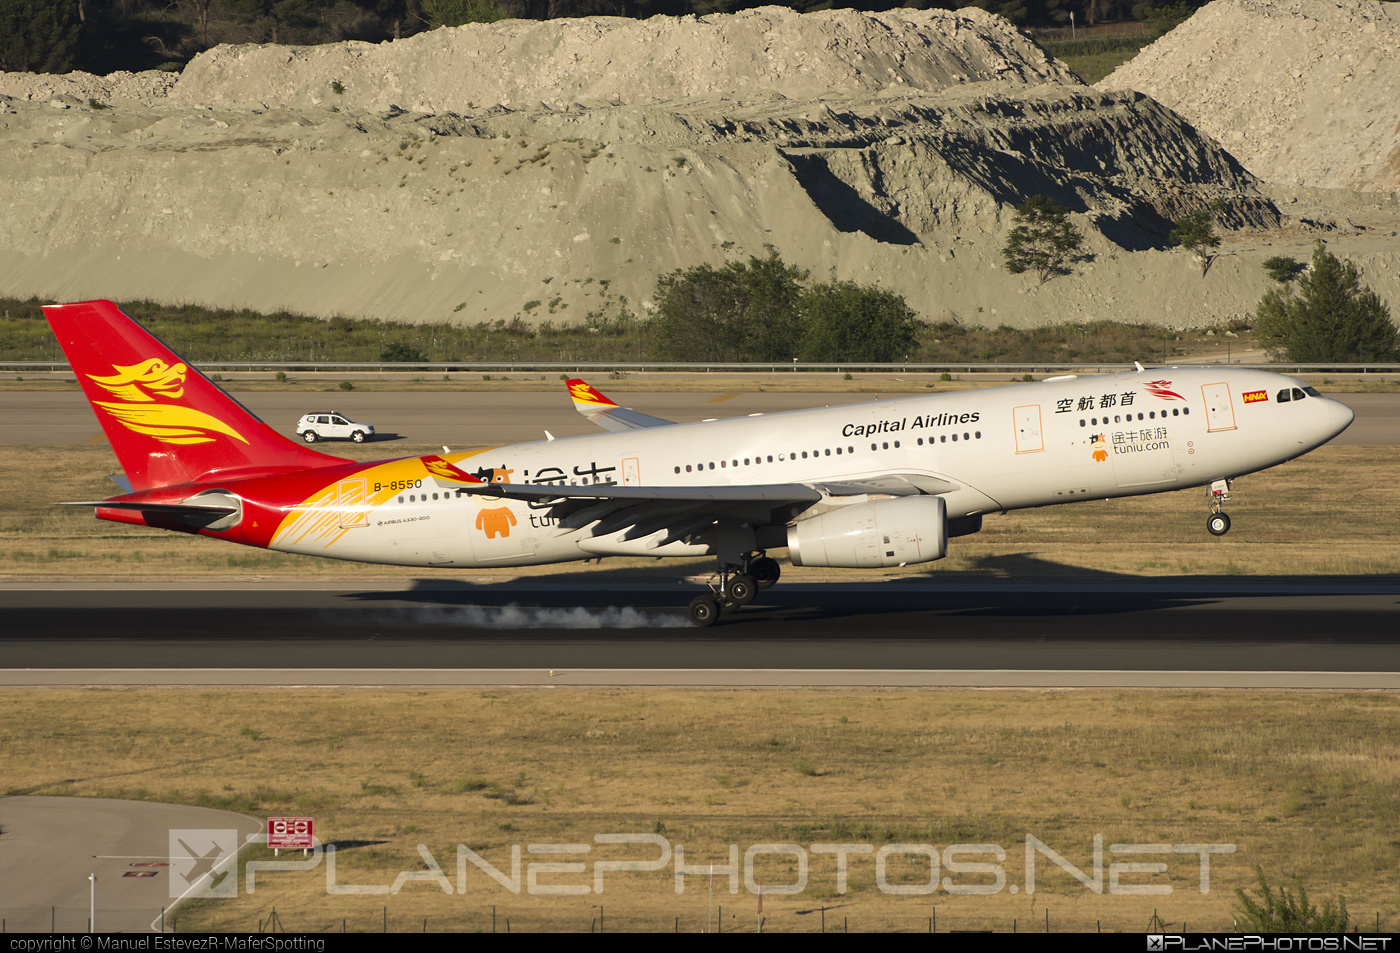 Airbus A330-243 - B-8550 operated by Capital Airlines #a330 #a330family #airbus #airbus330